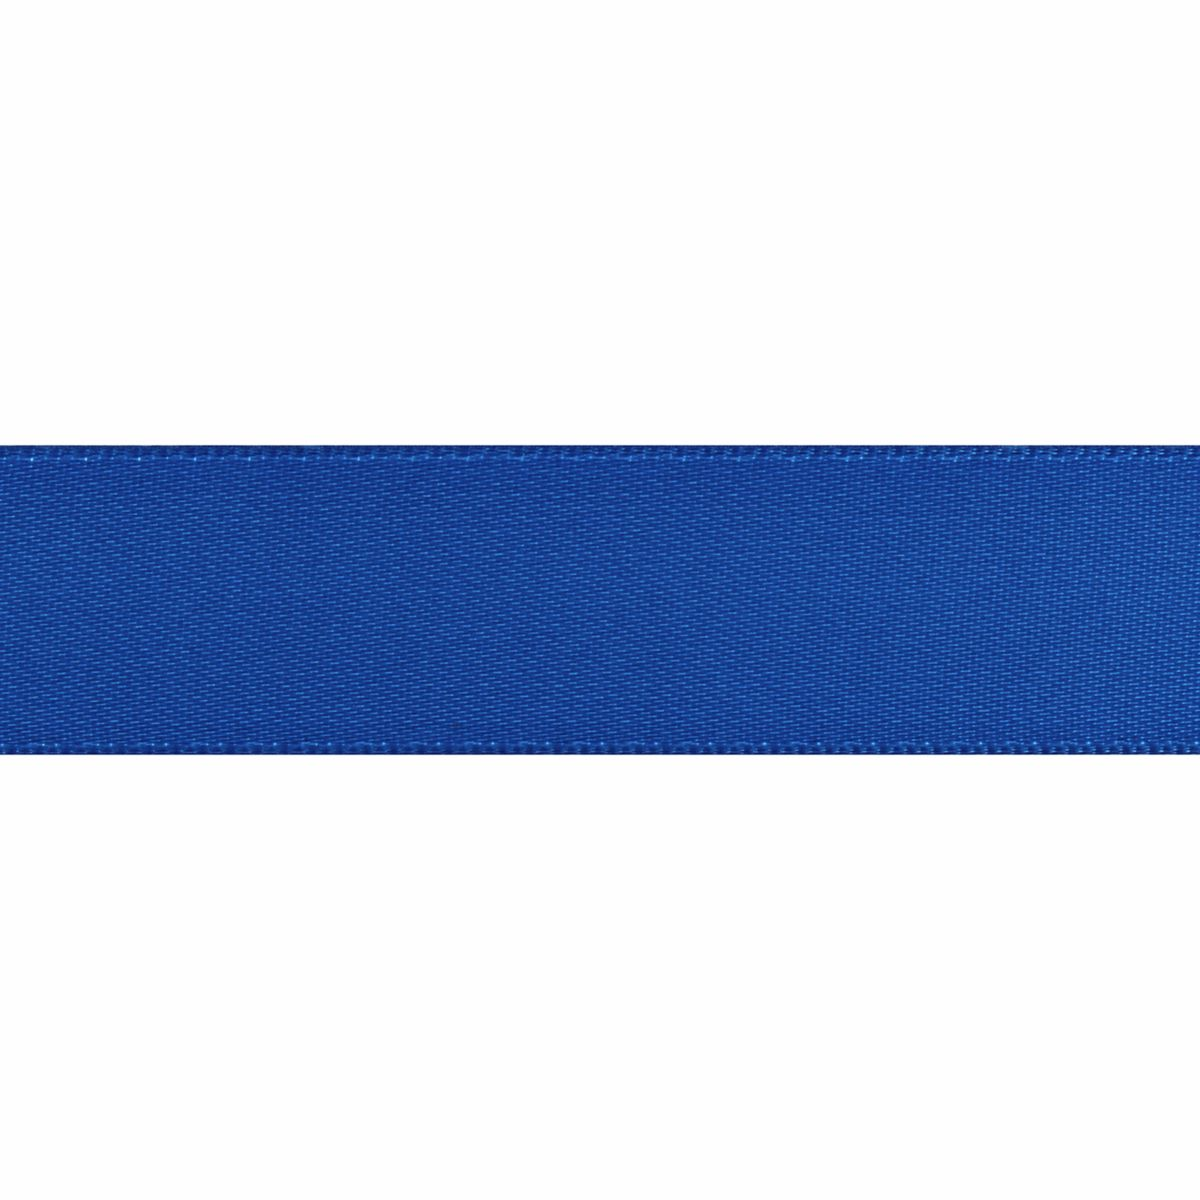 Royal Blue Double Satin Ribbon 5m rolls from 3mm to 36mm wide